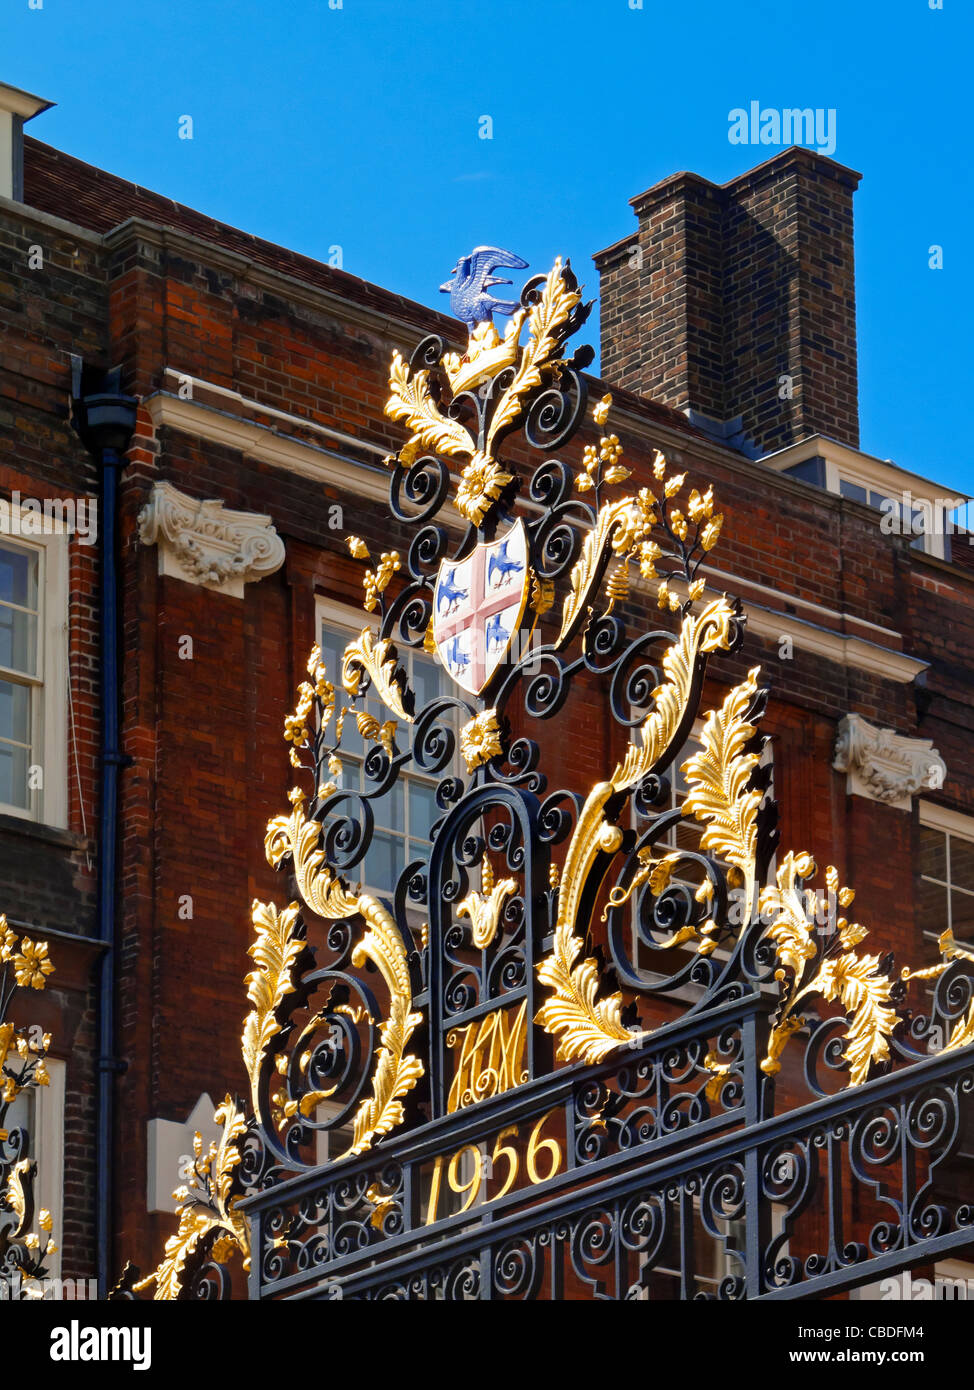 Detail of gilded heraldic entrance gates to the College of Arms in Queen Victoria Street City of London England - Stock Image